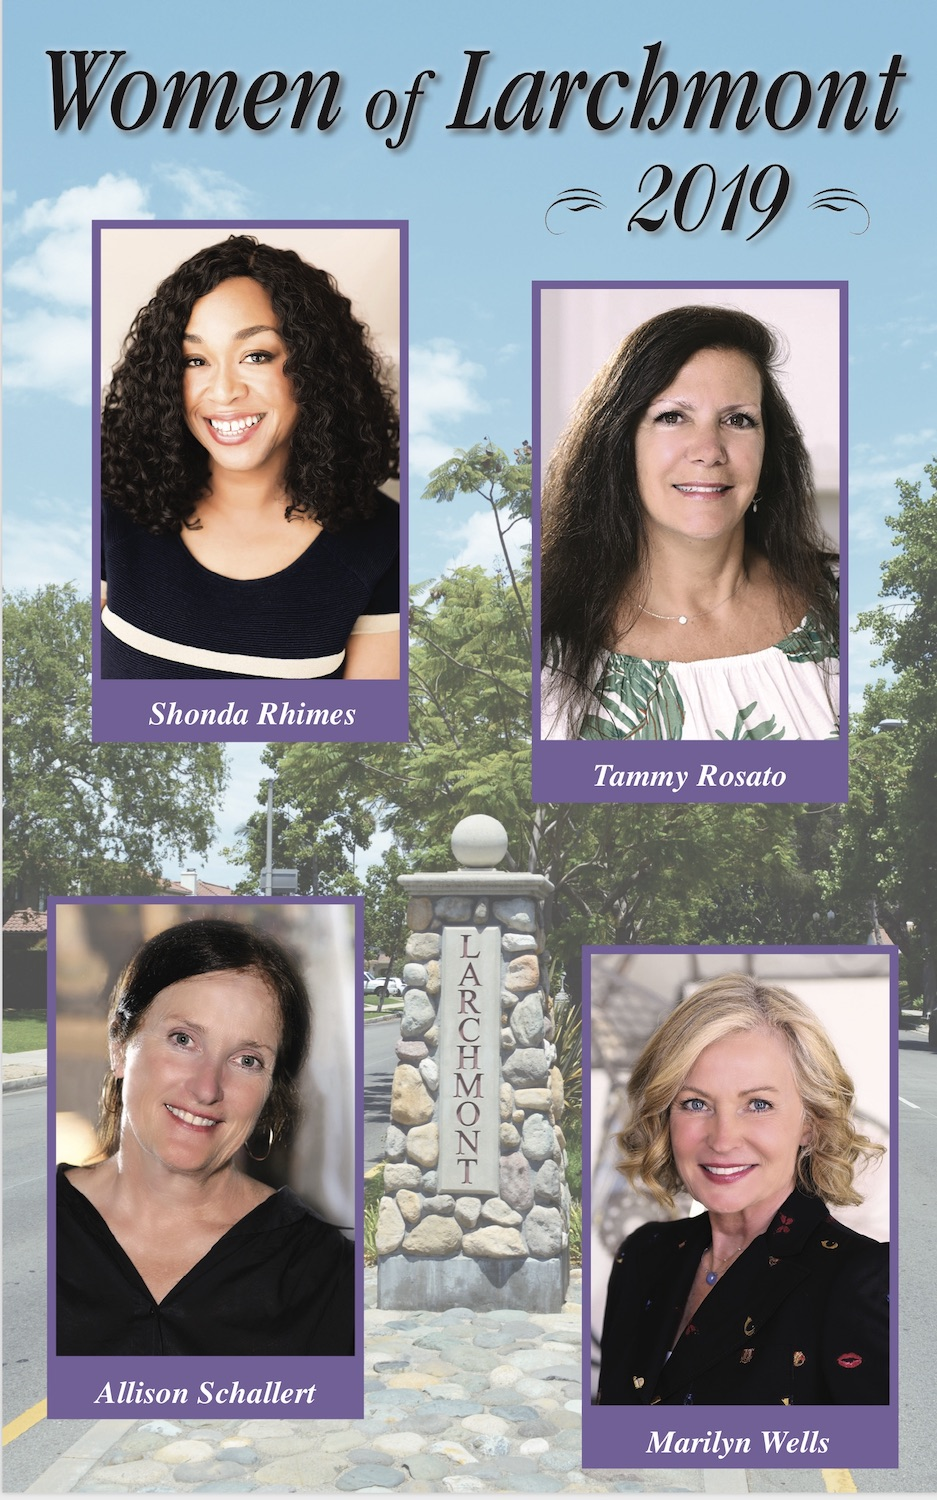 Click below to read the 2019 Women of Larchmont